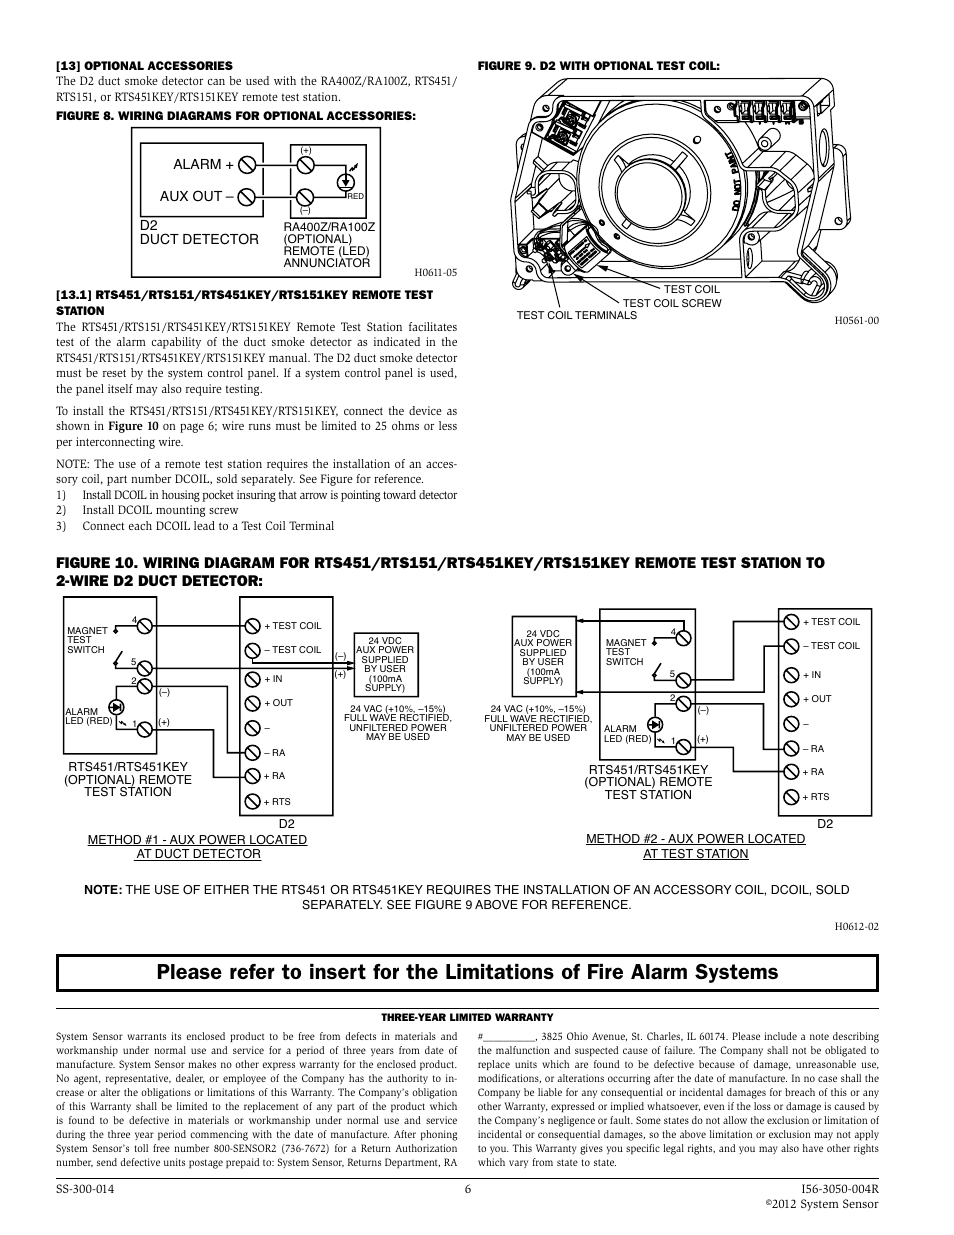 System Sensor Duct Detector Dh400acdc Wiring Diagram on